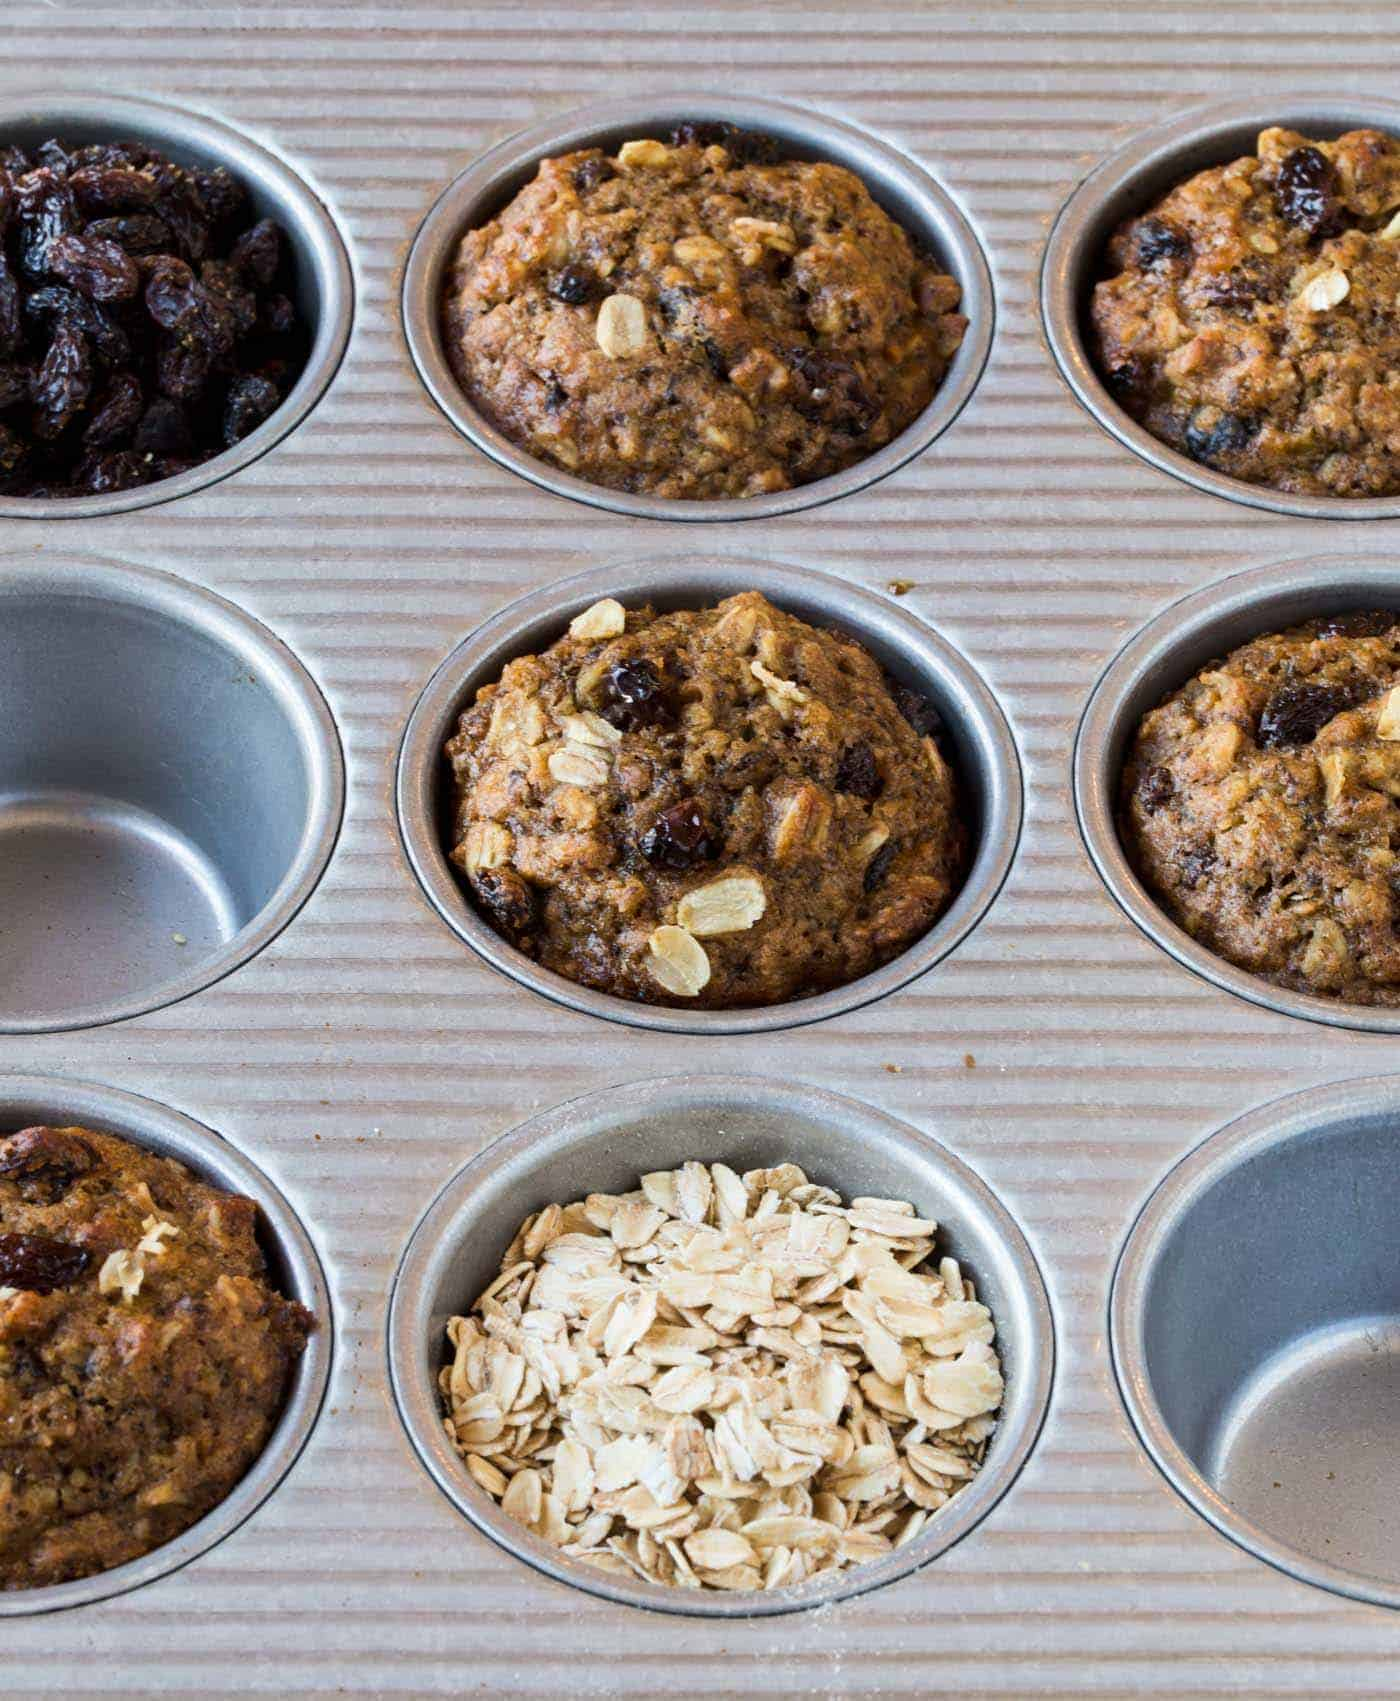 Add a dash of goodness to your morning nosh with this recipe for Healthy Oatmeal Raisin Muffins.